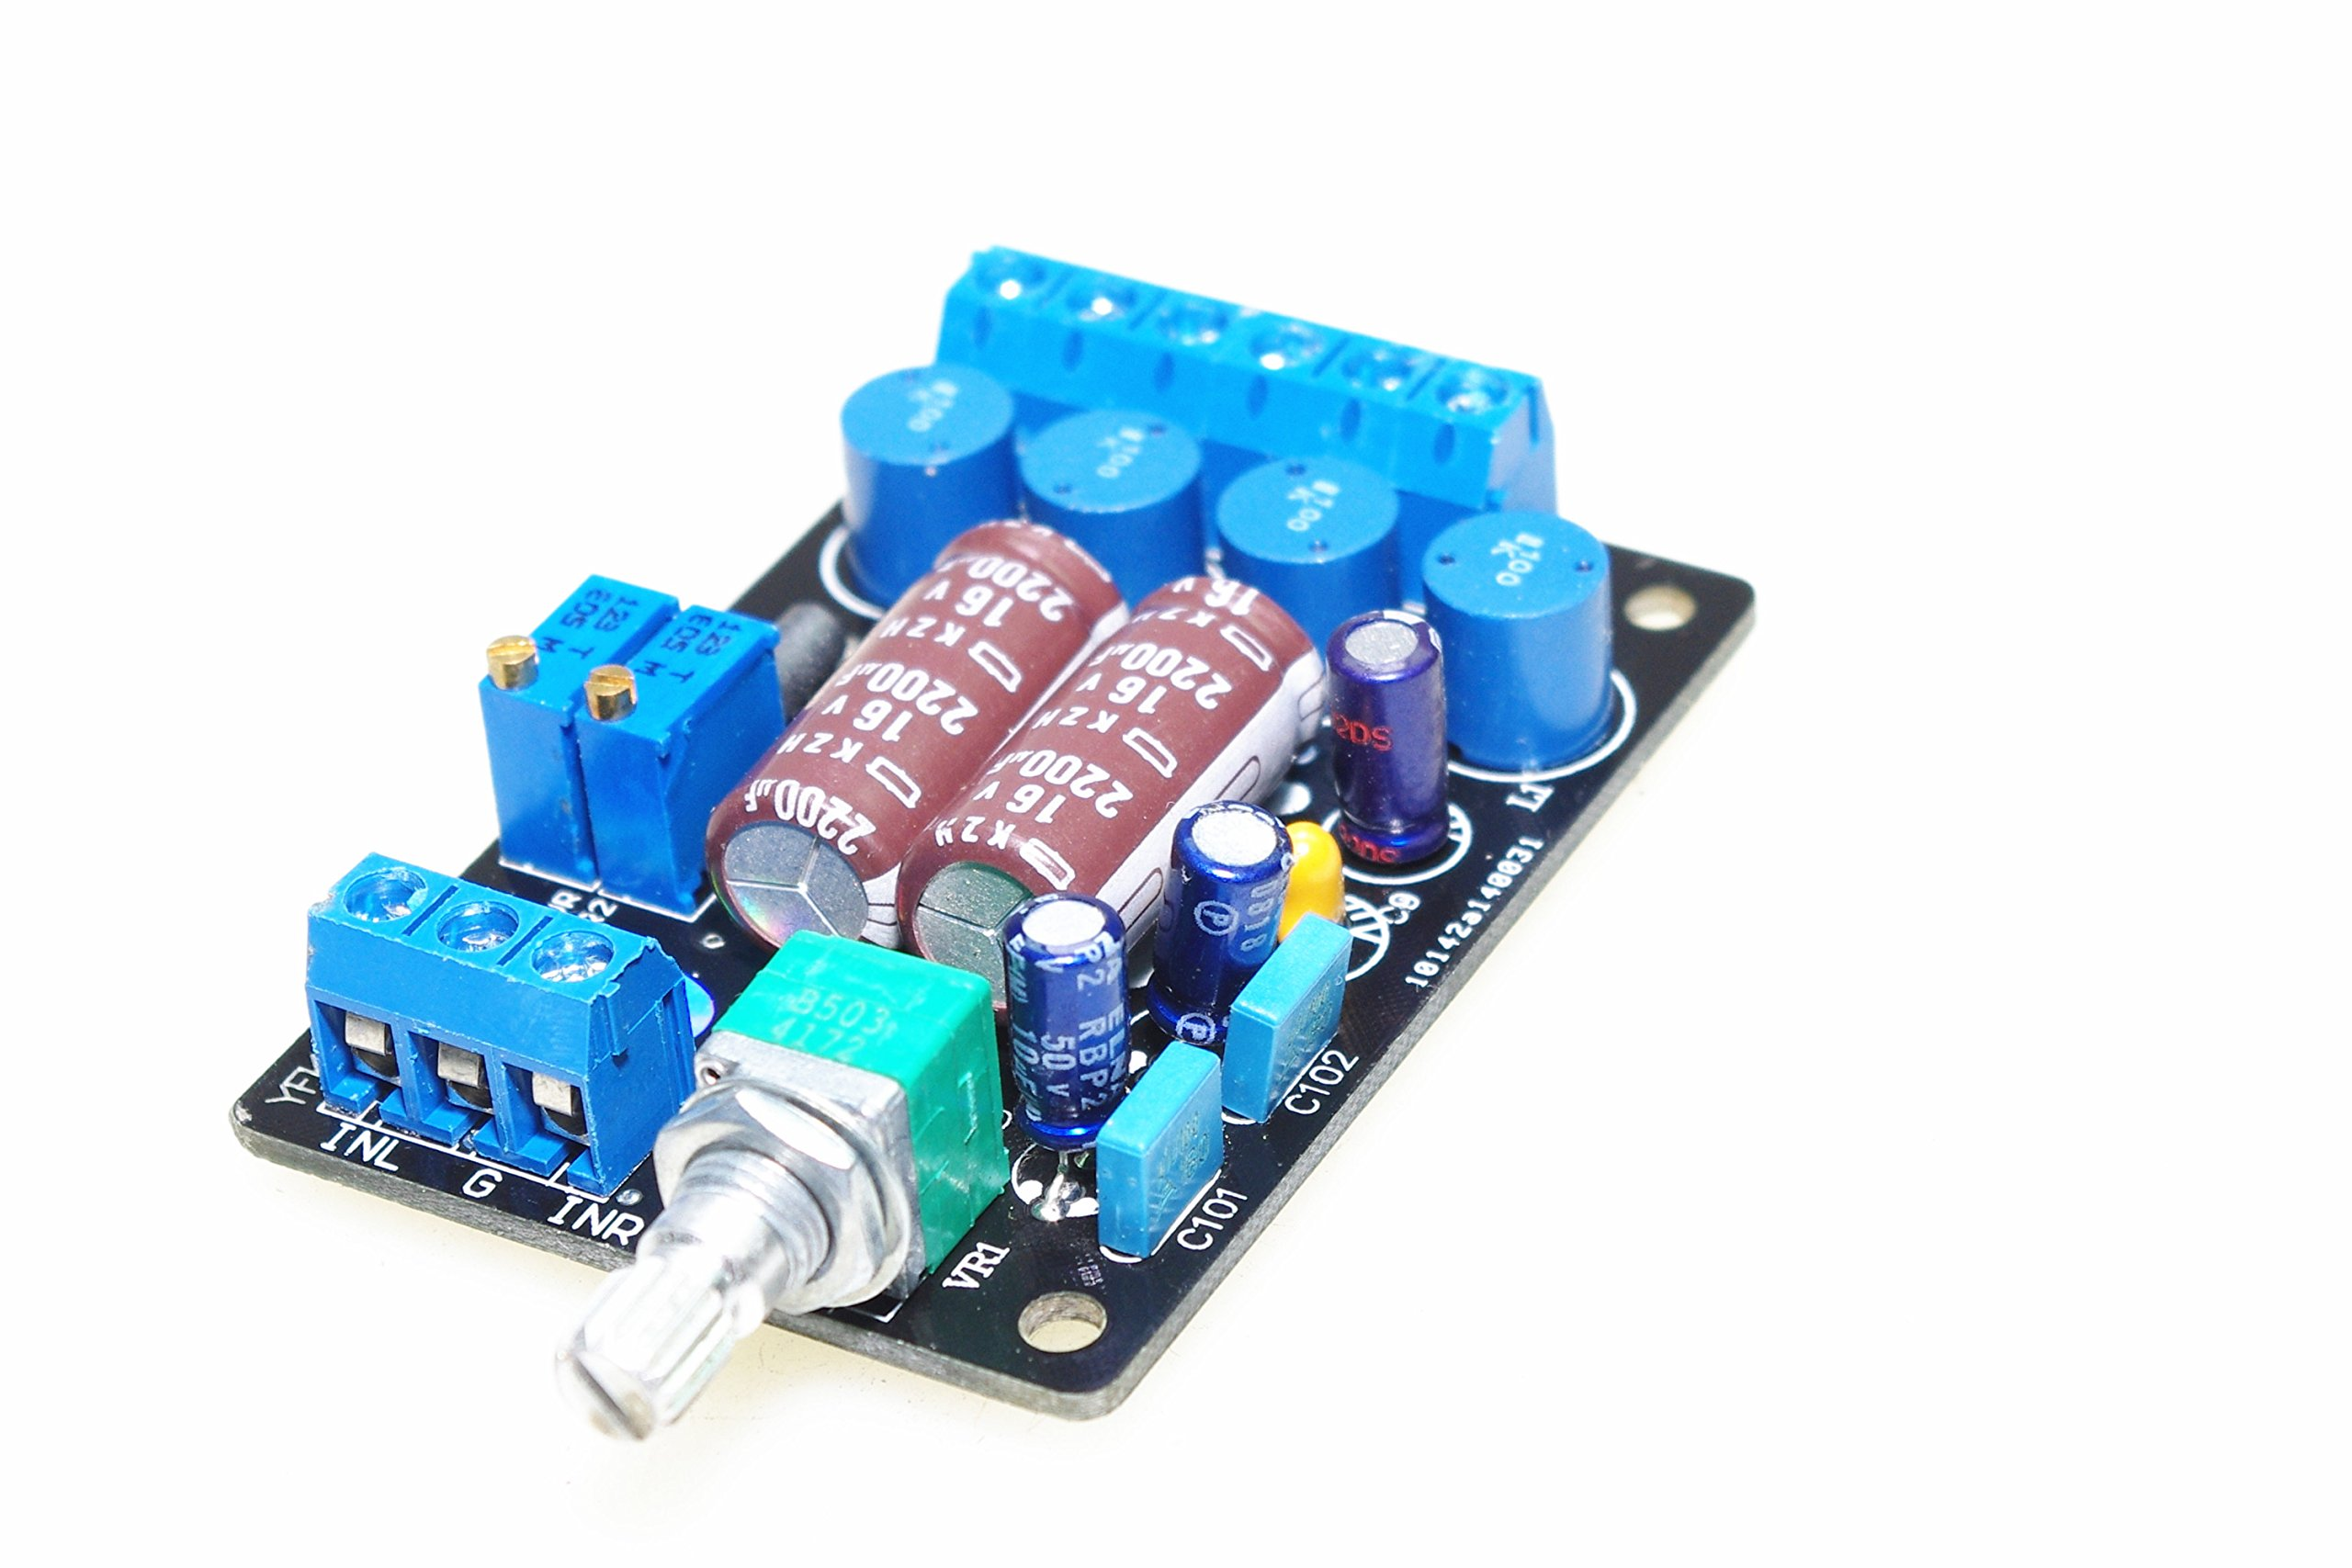 SMAKN® Mini TA2024 Computer PC Digital Stereo Amplifier Board DC 12V/3A Power Audio Amp DIY